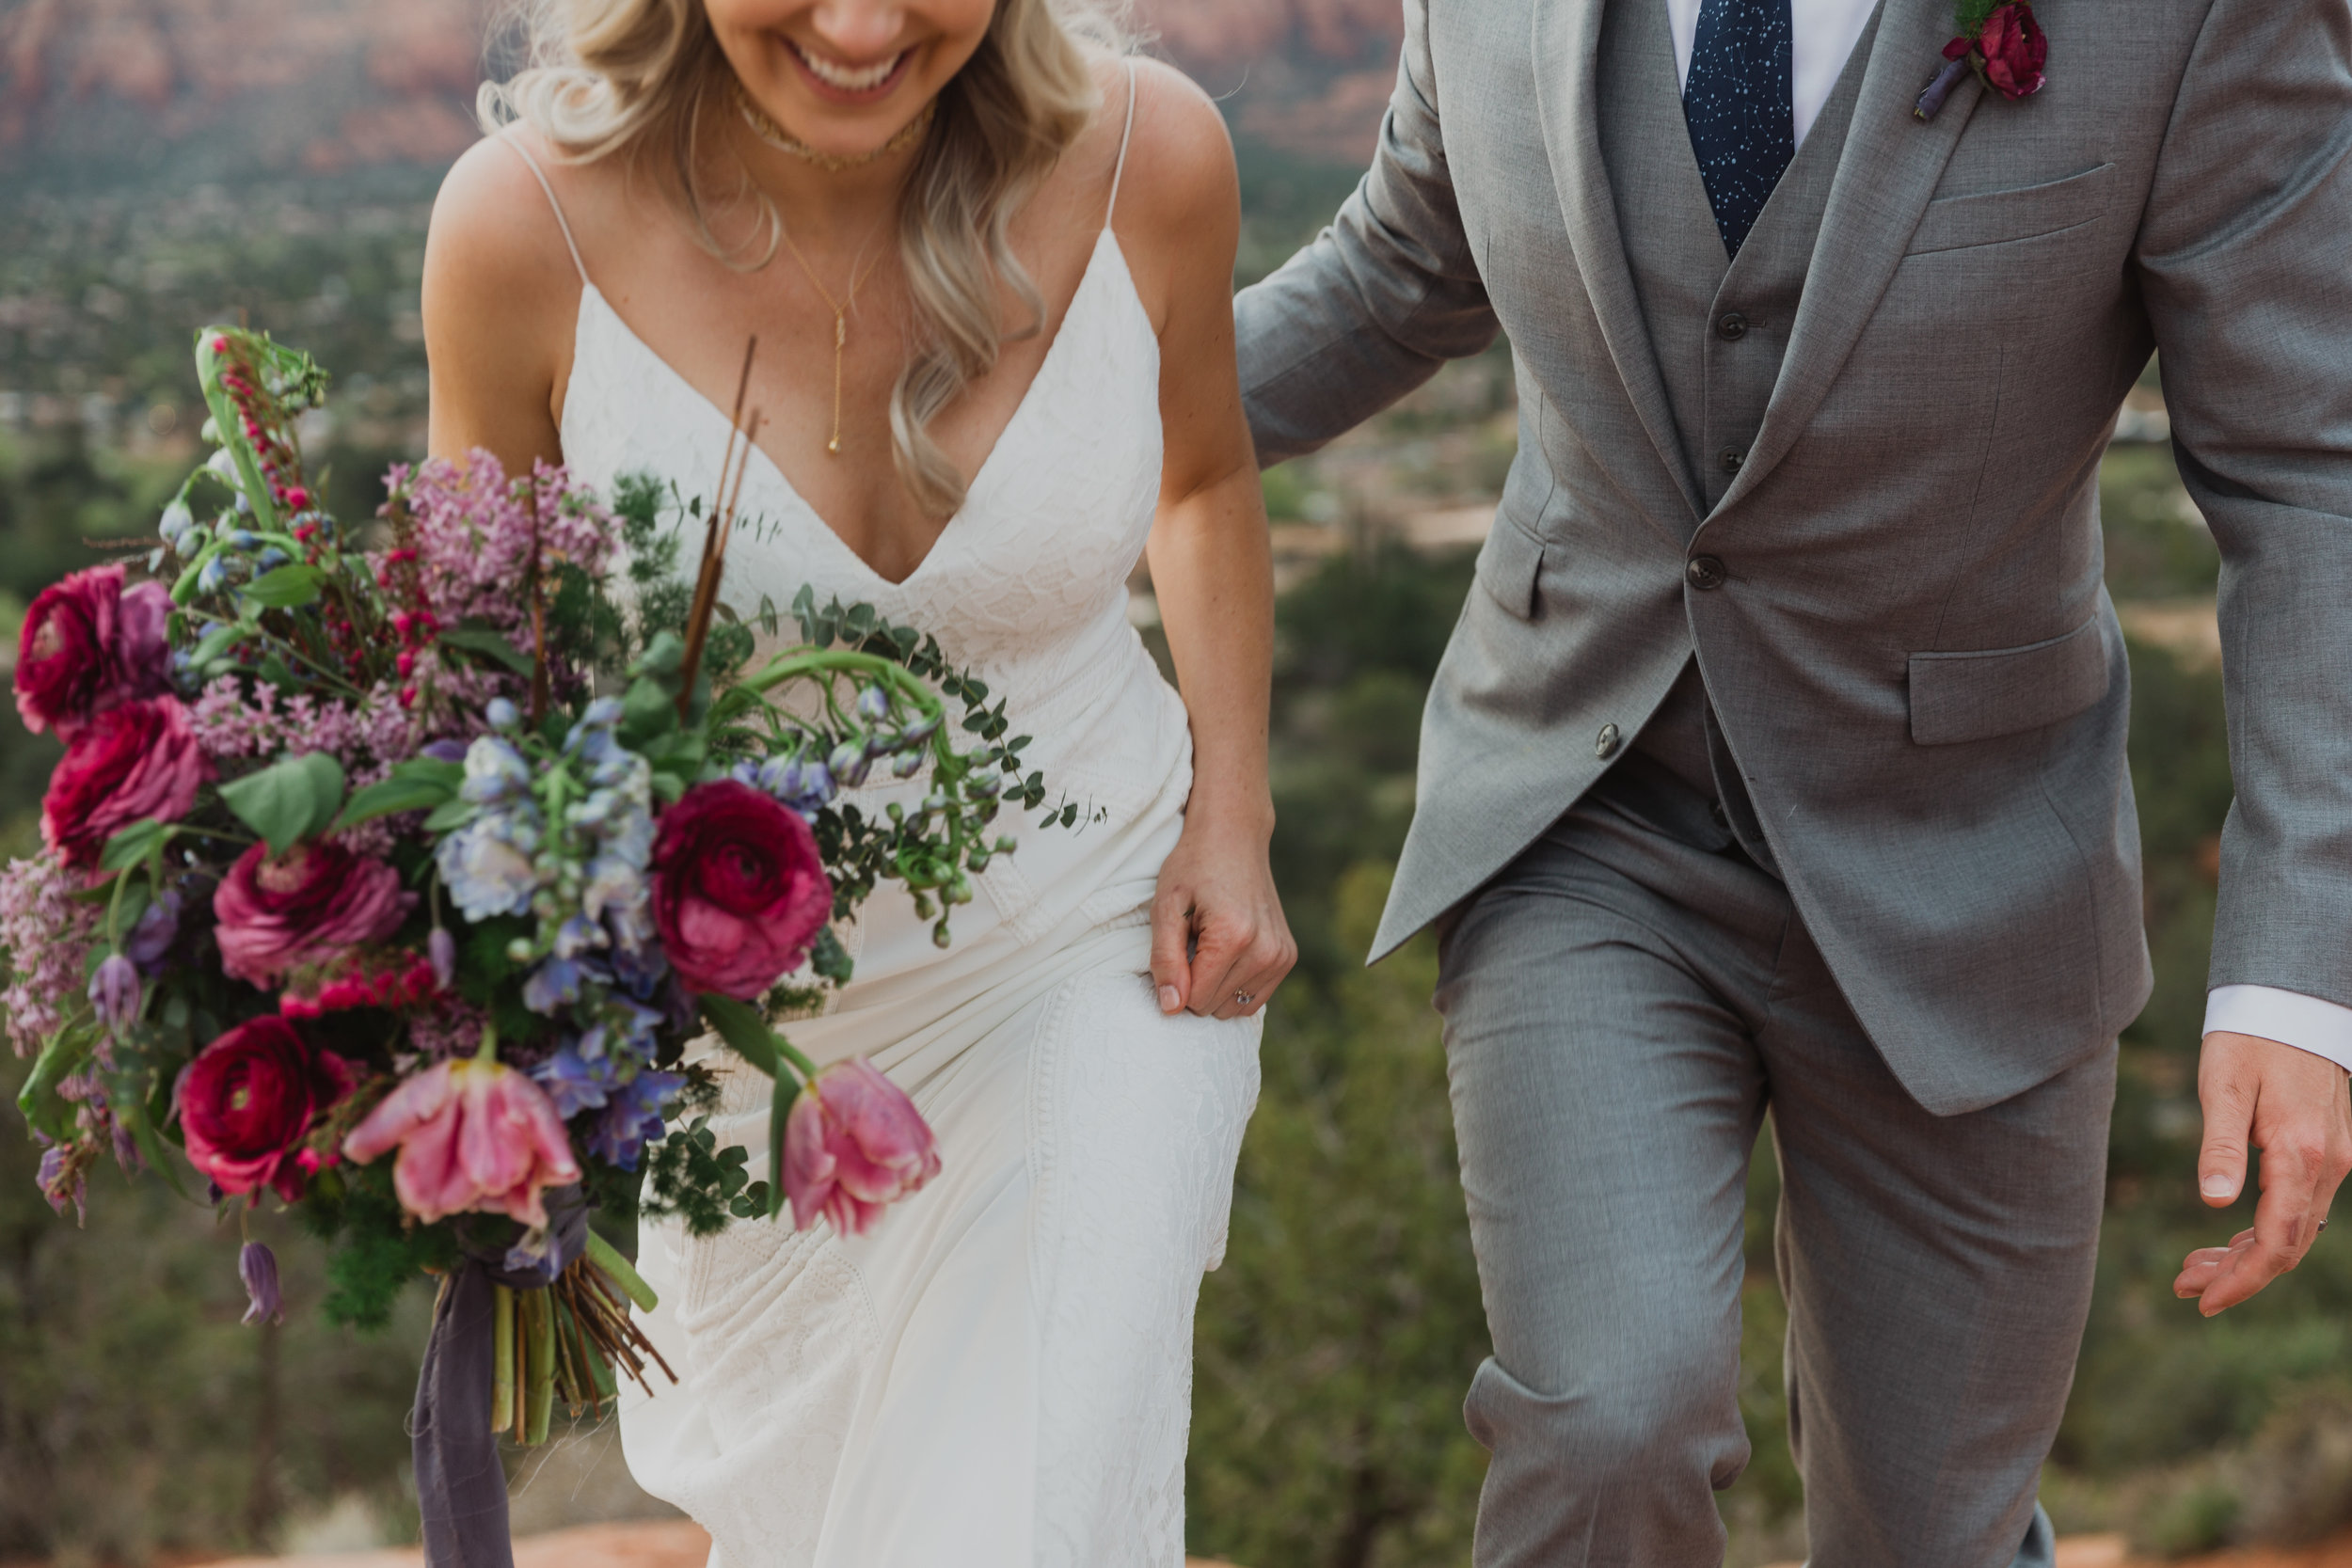 Stars and Moon Inspired Wedding in the Red Rocks of Sedona - Arizona Florist serving Phoenix scottsdale Mesa chandler Flagstaff Prescott - Bride and Groom Style - Purple and Blue Bridal Bouquet